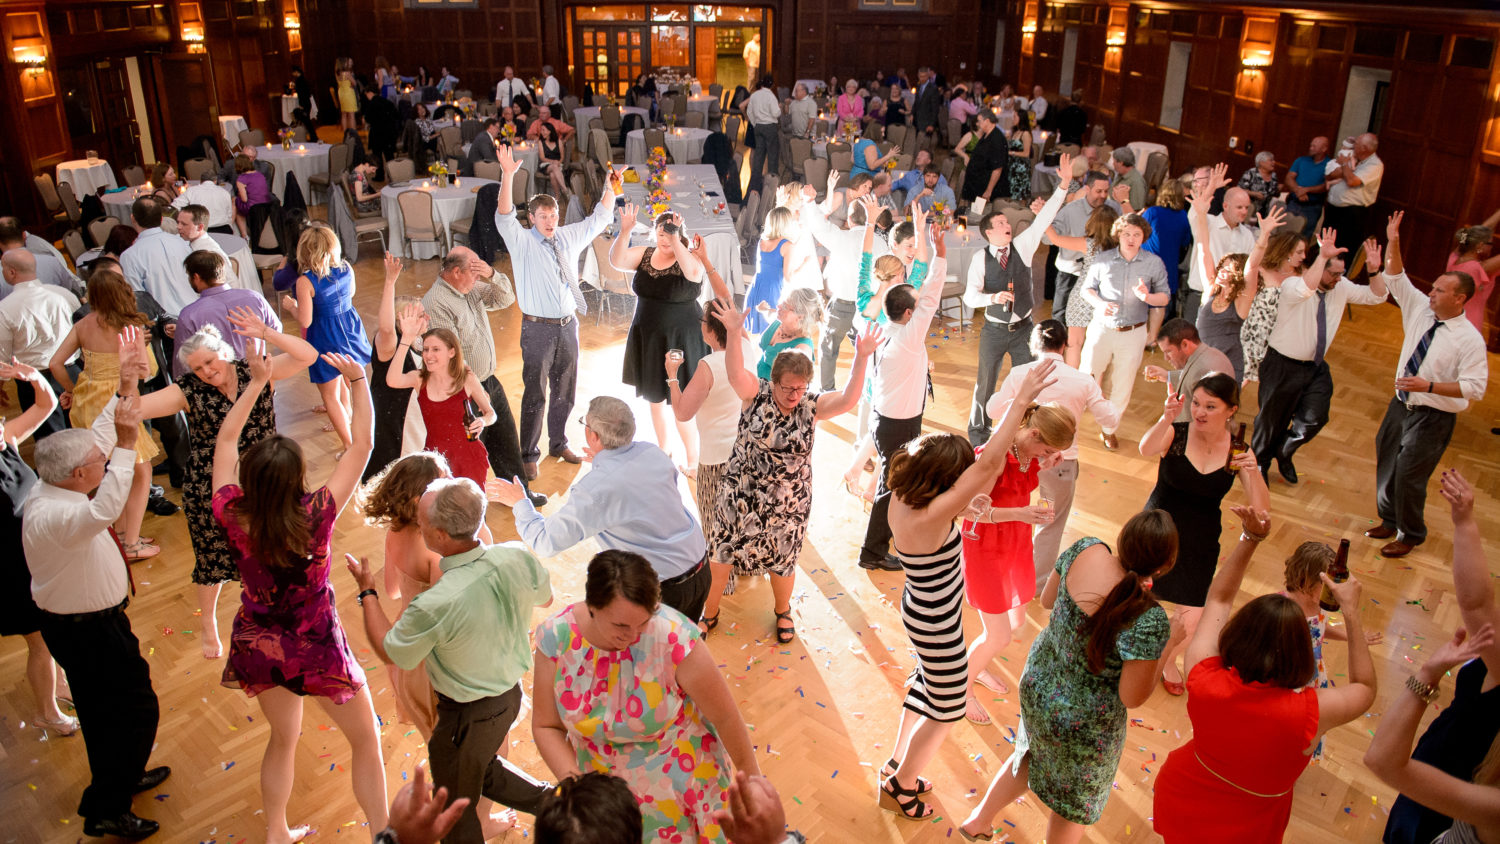 Awesome packed wedding dance floor